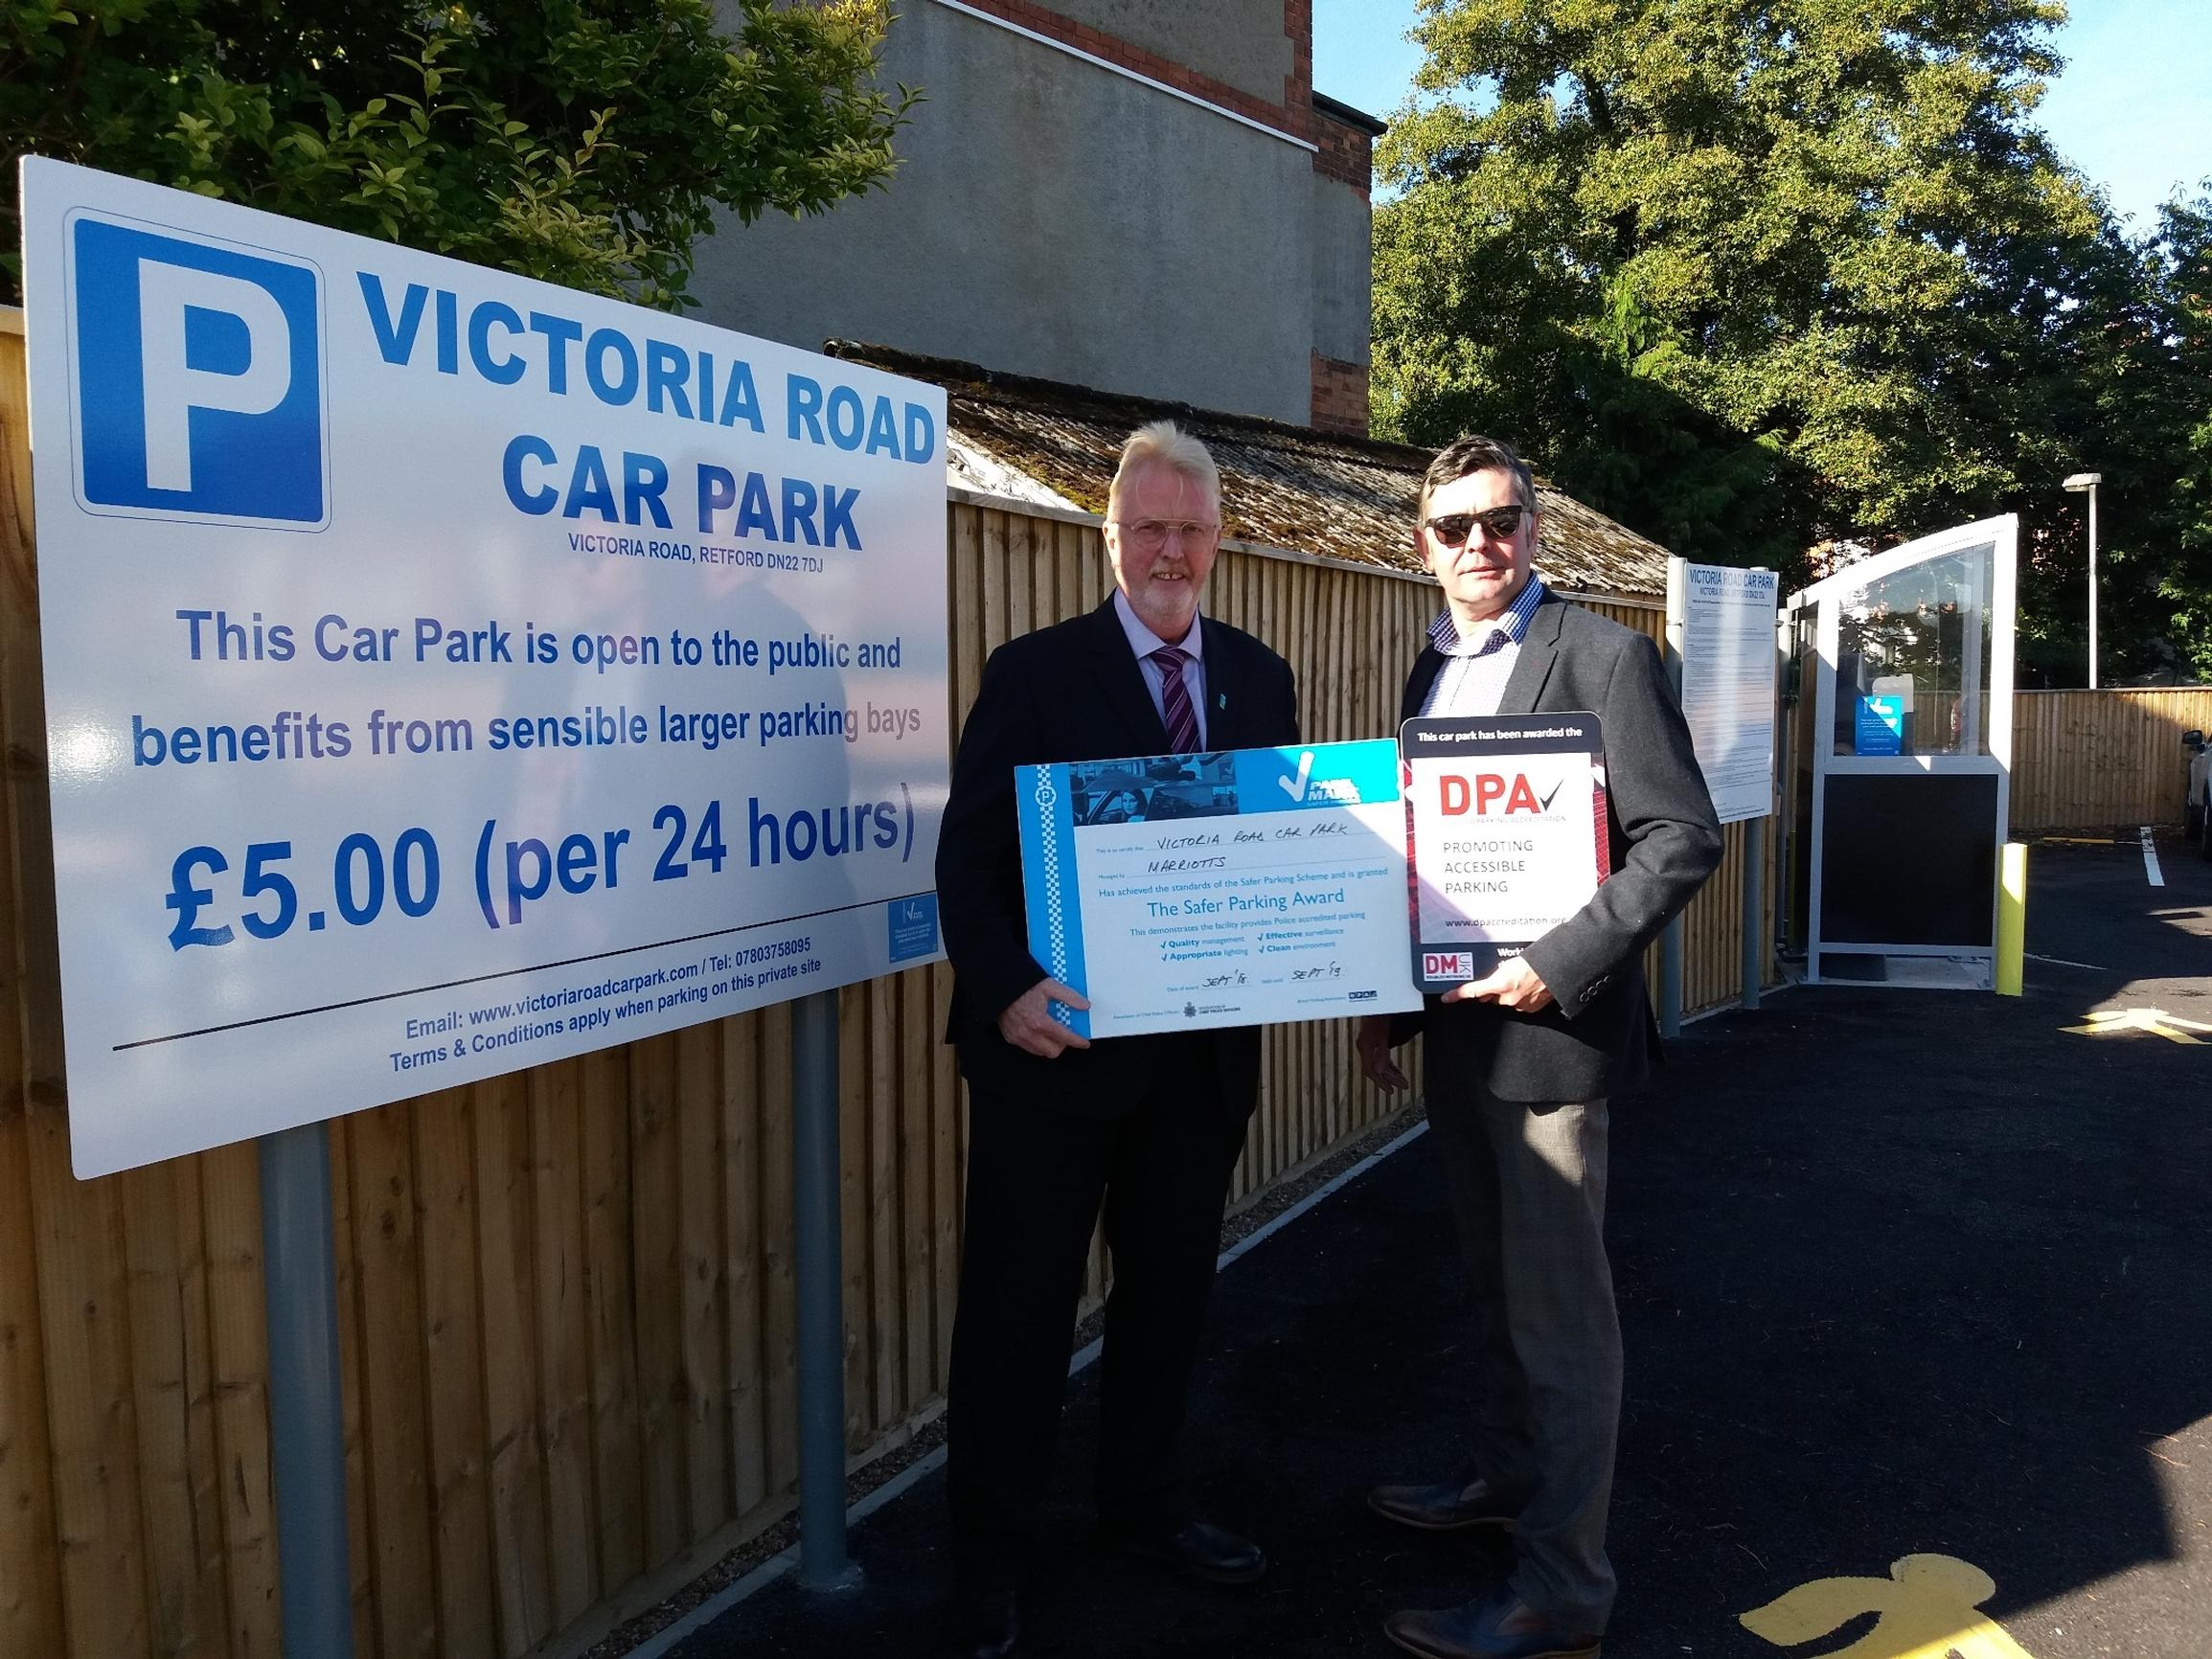 New Retford car park is safe and secure